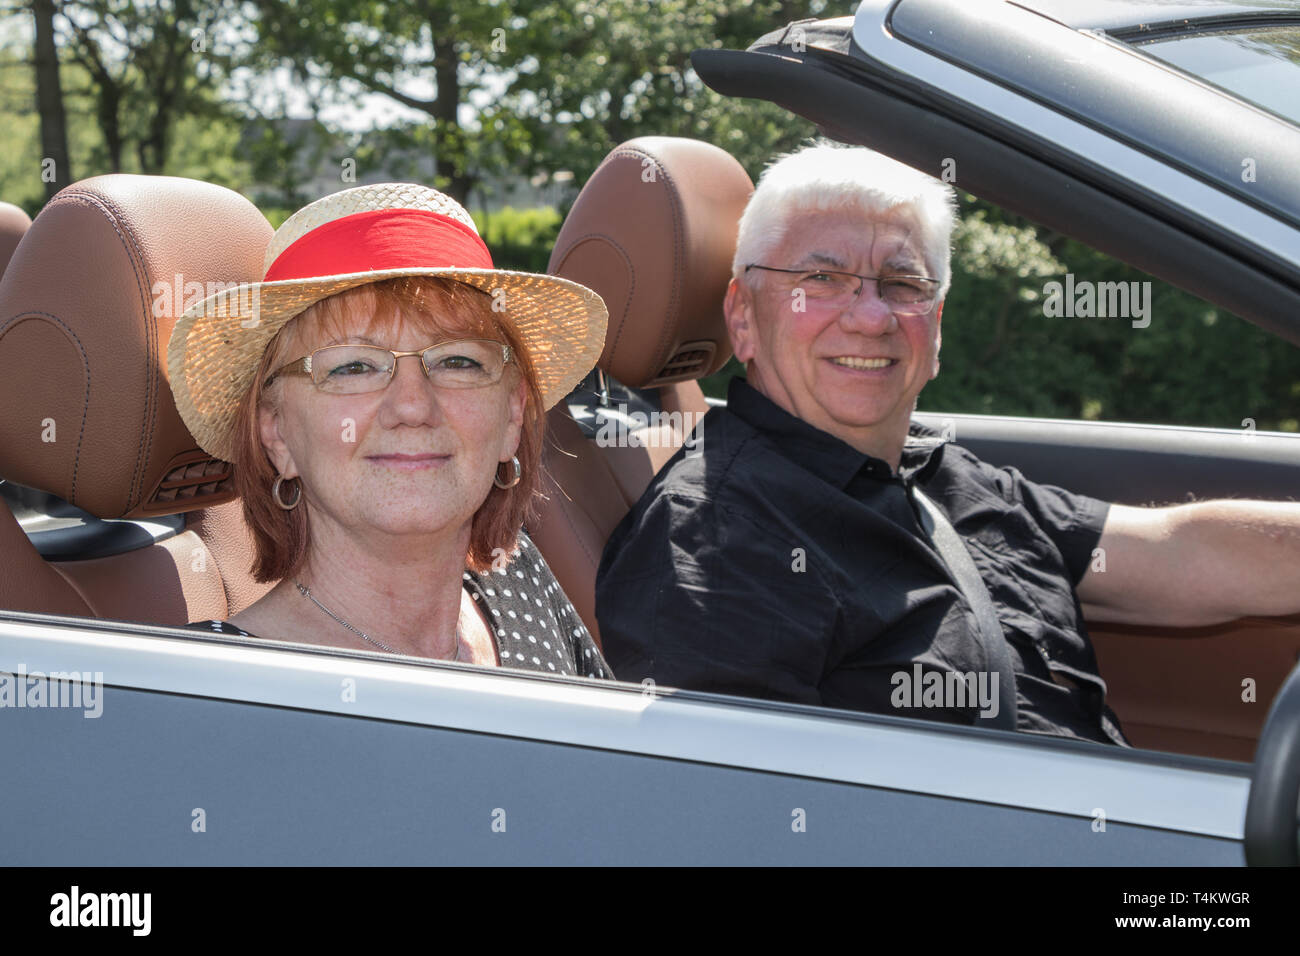 Older couple in a luxury convertible car on a sunny day - Stock Image